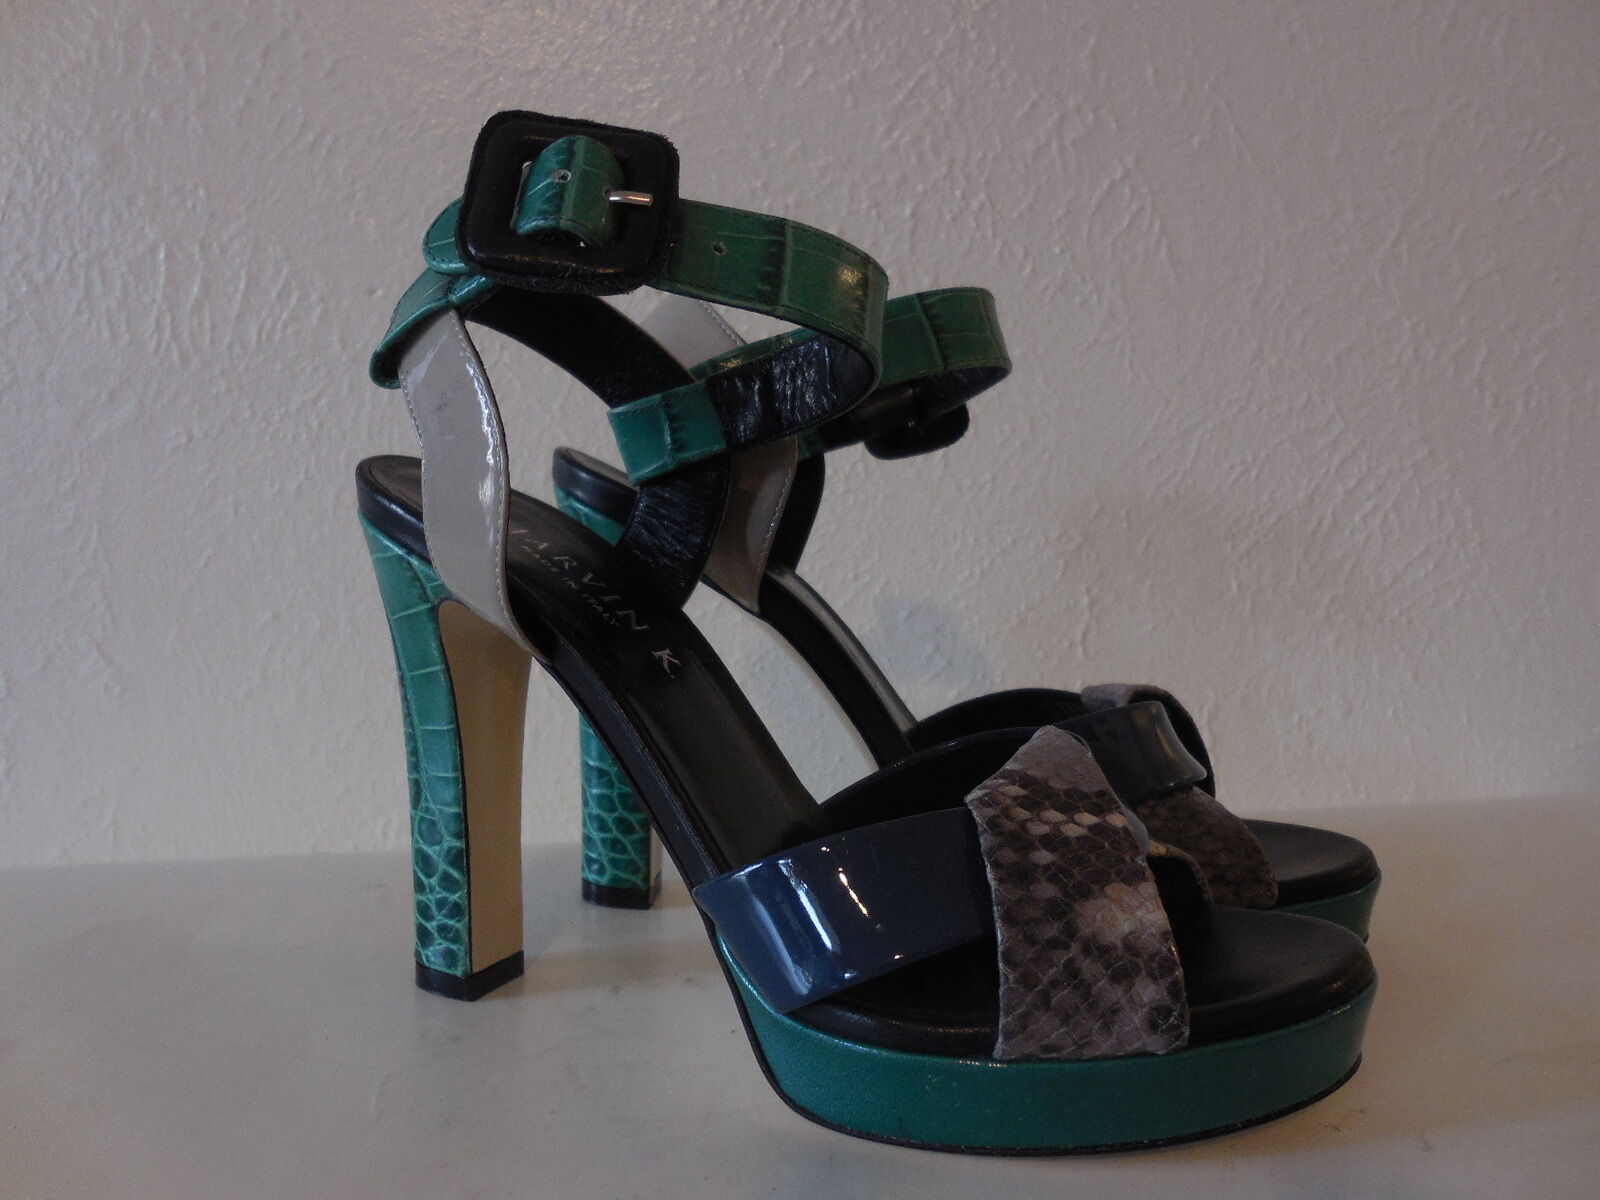 New New New Sz.6 Marvin K Fad Jade Combo Leather Strappy Heels Platform Sandals (ITALY) 9cc2d2